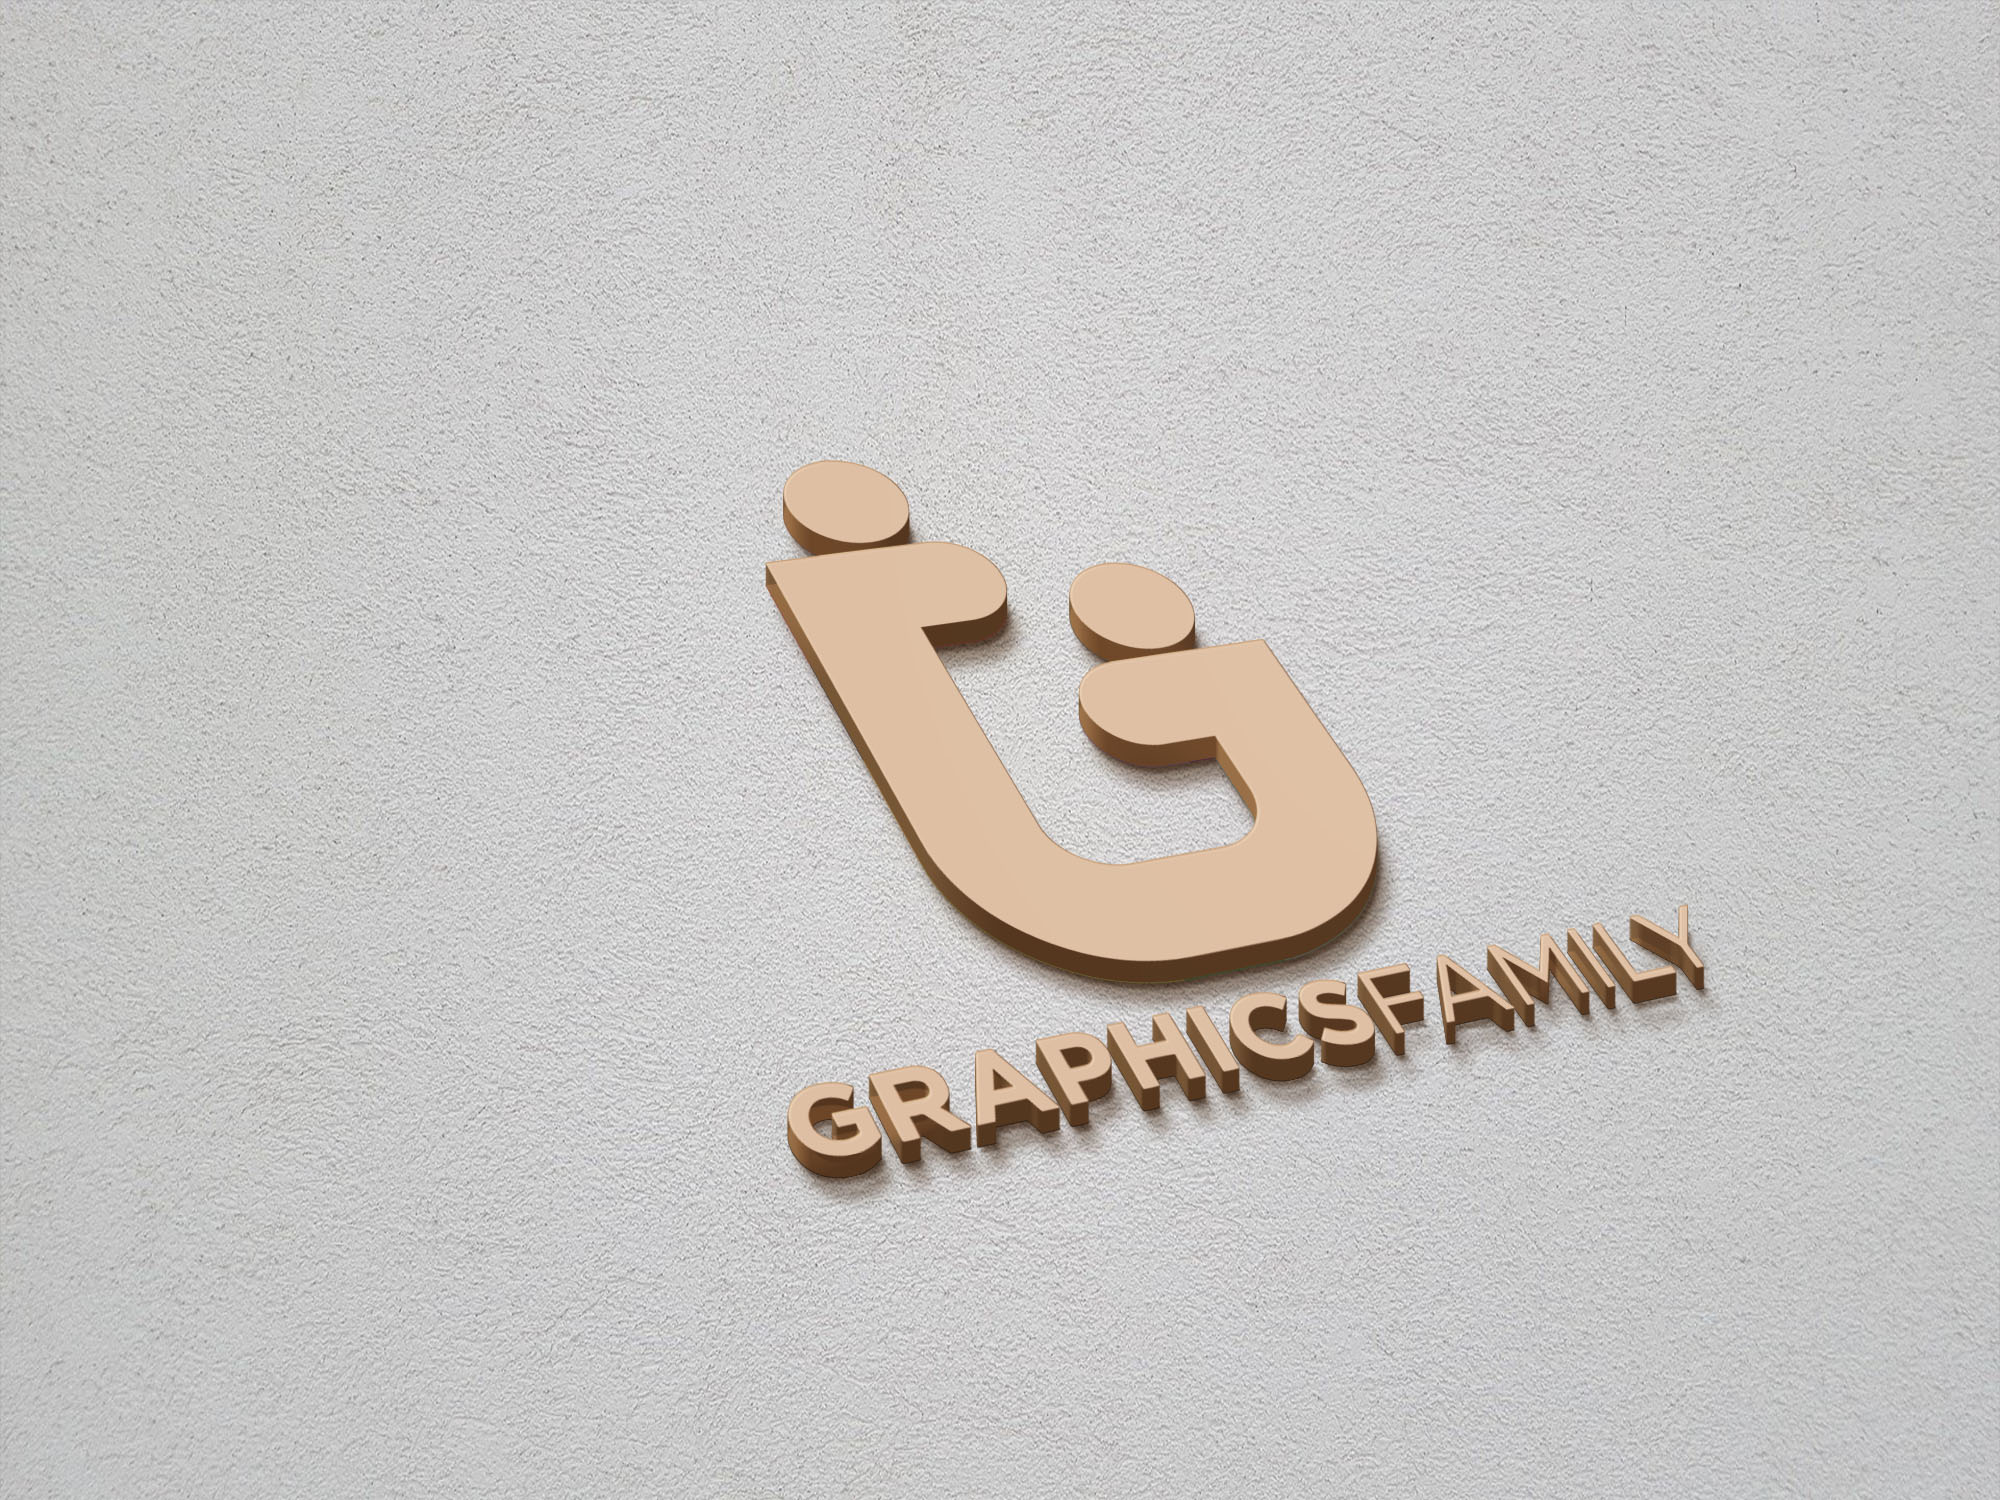 Graphicsfamily logo on 3d gold mockup